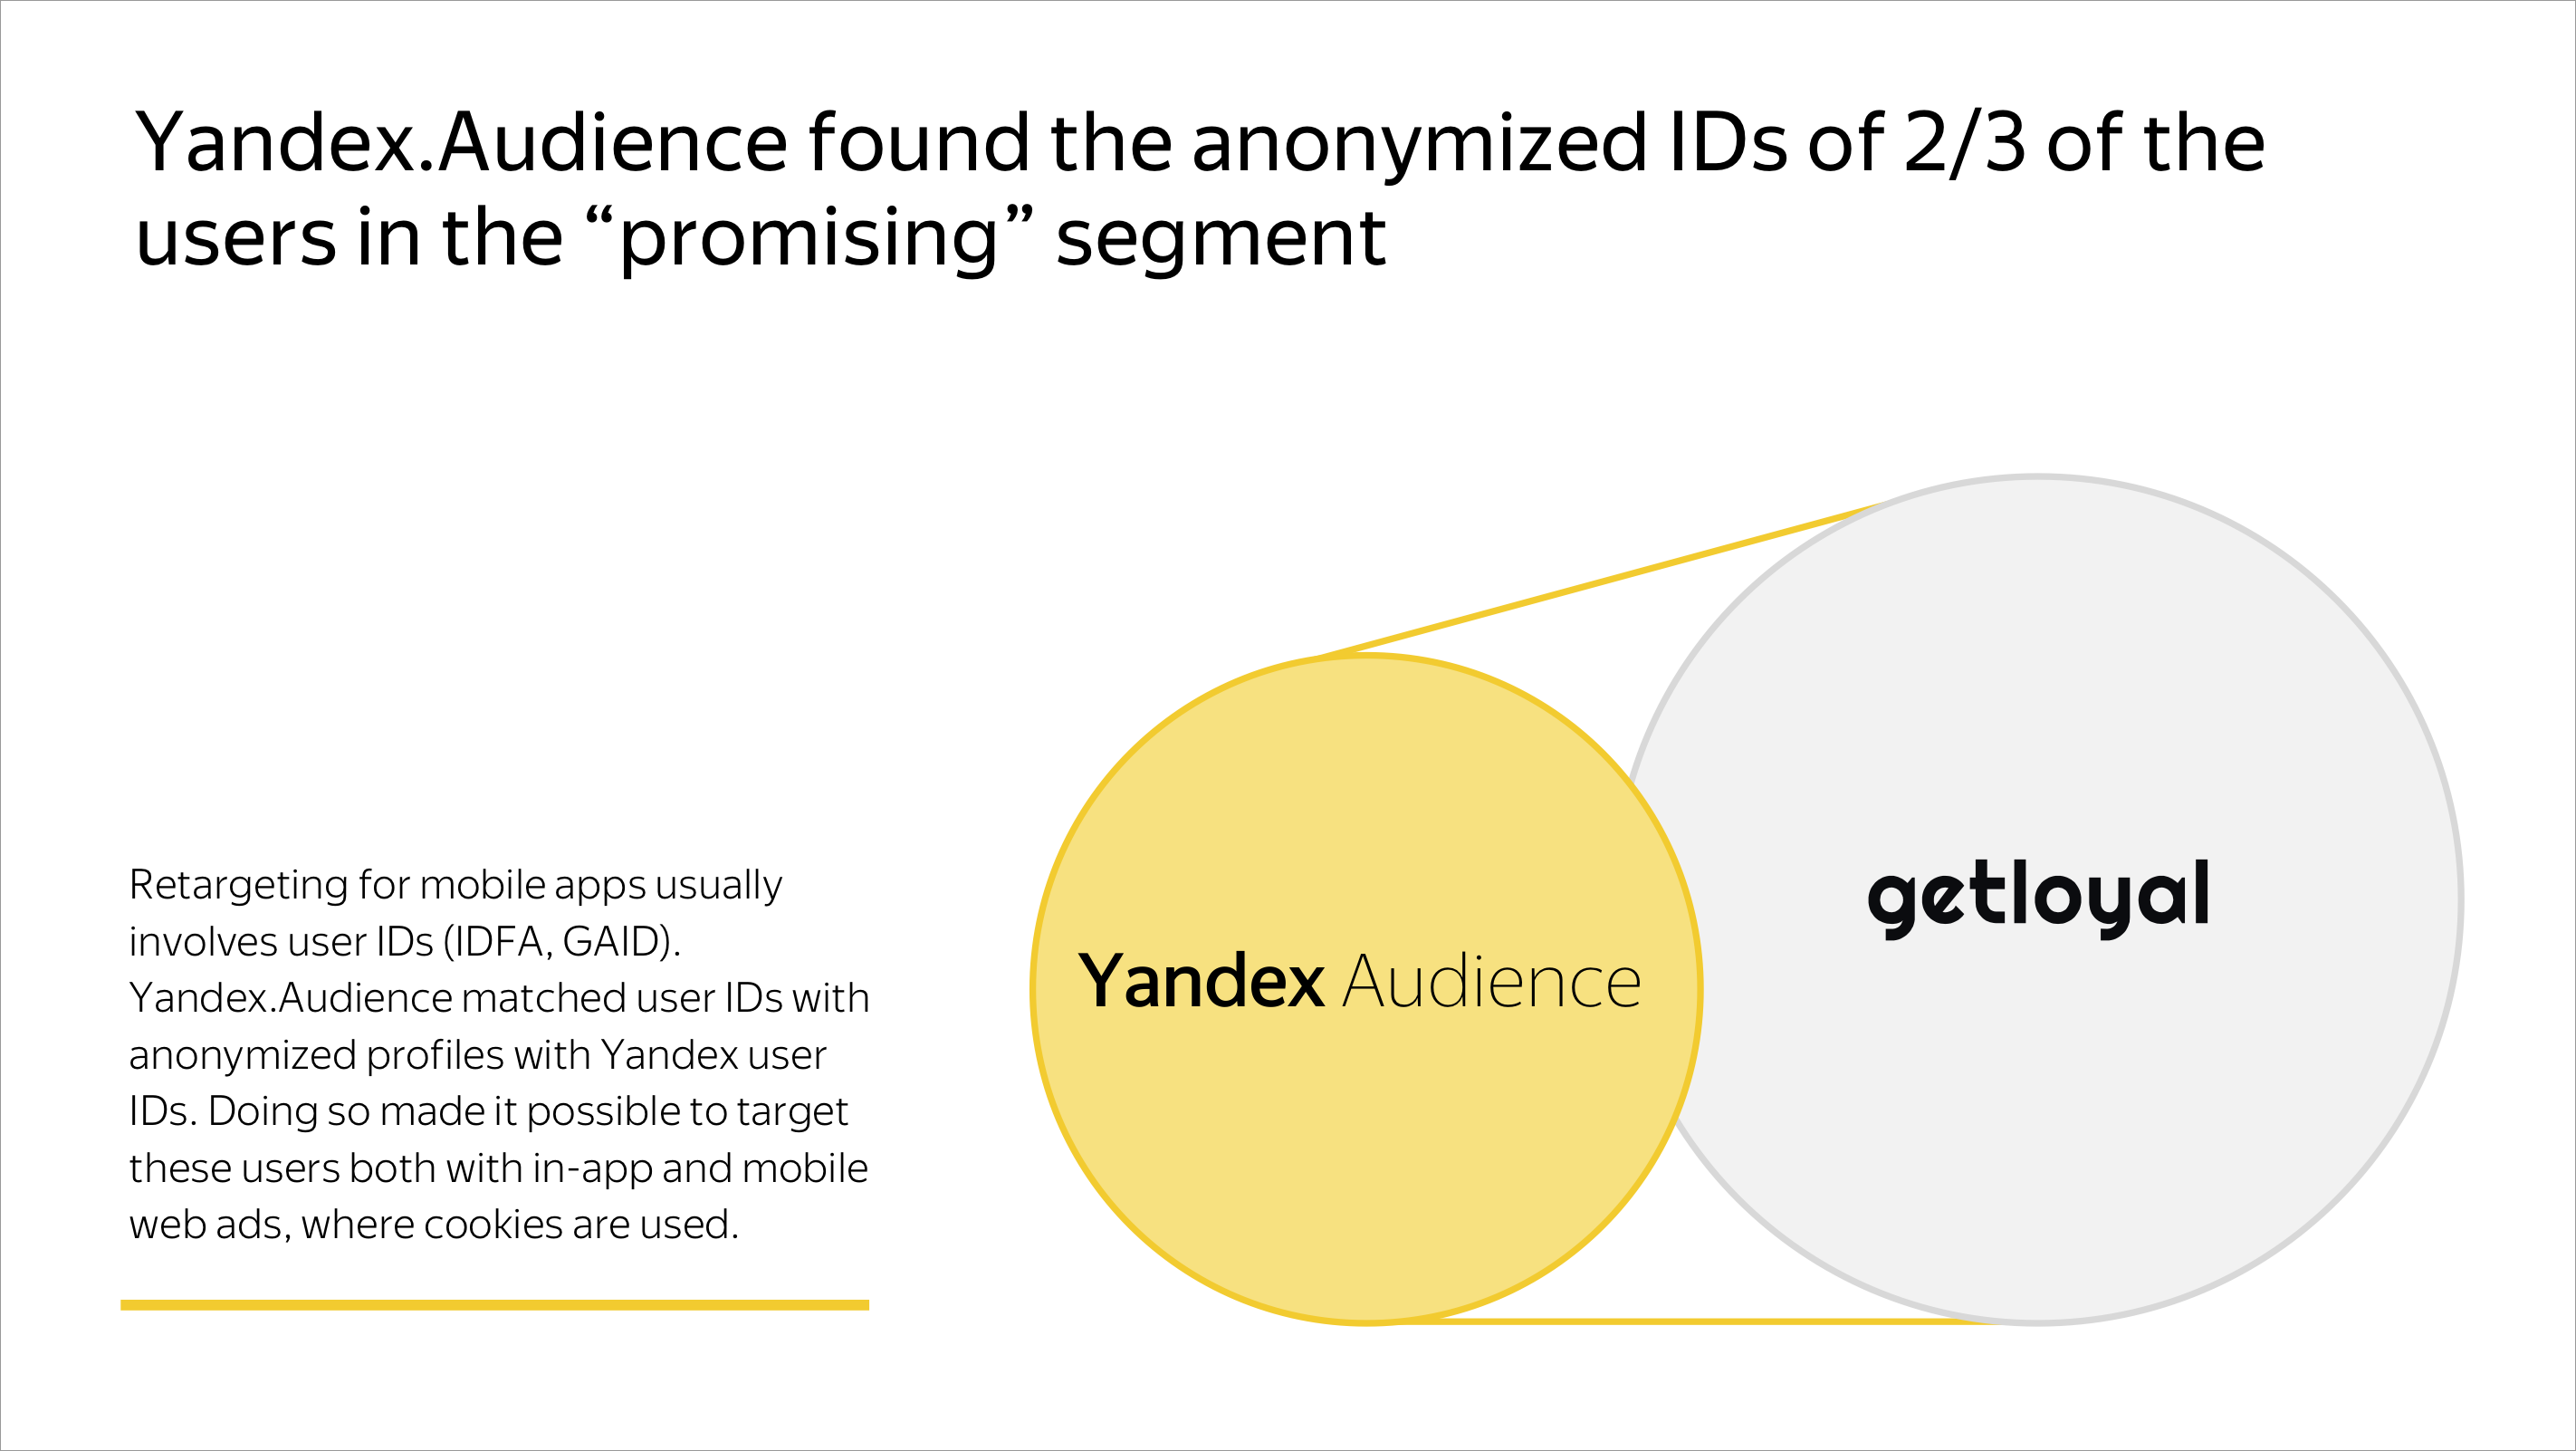 """Yandex.Audience found the anonymized IDs of 2/3 of the users in the """"promising"""" segment"""